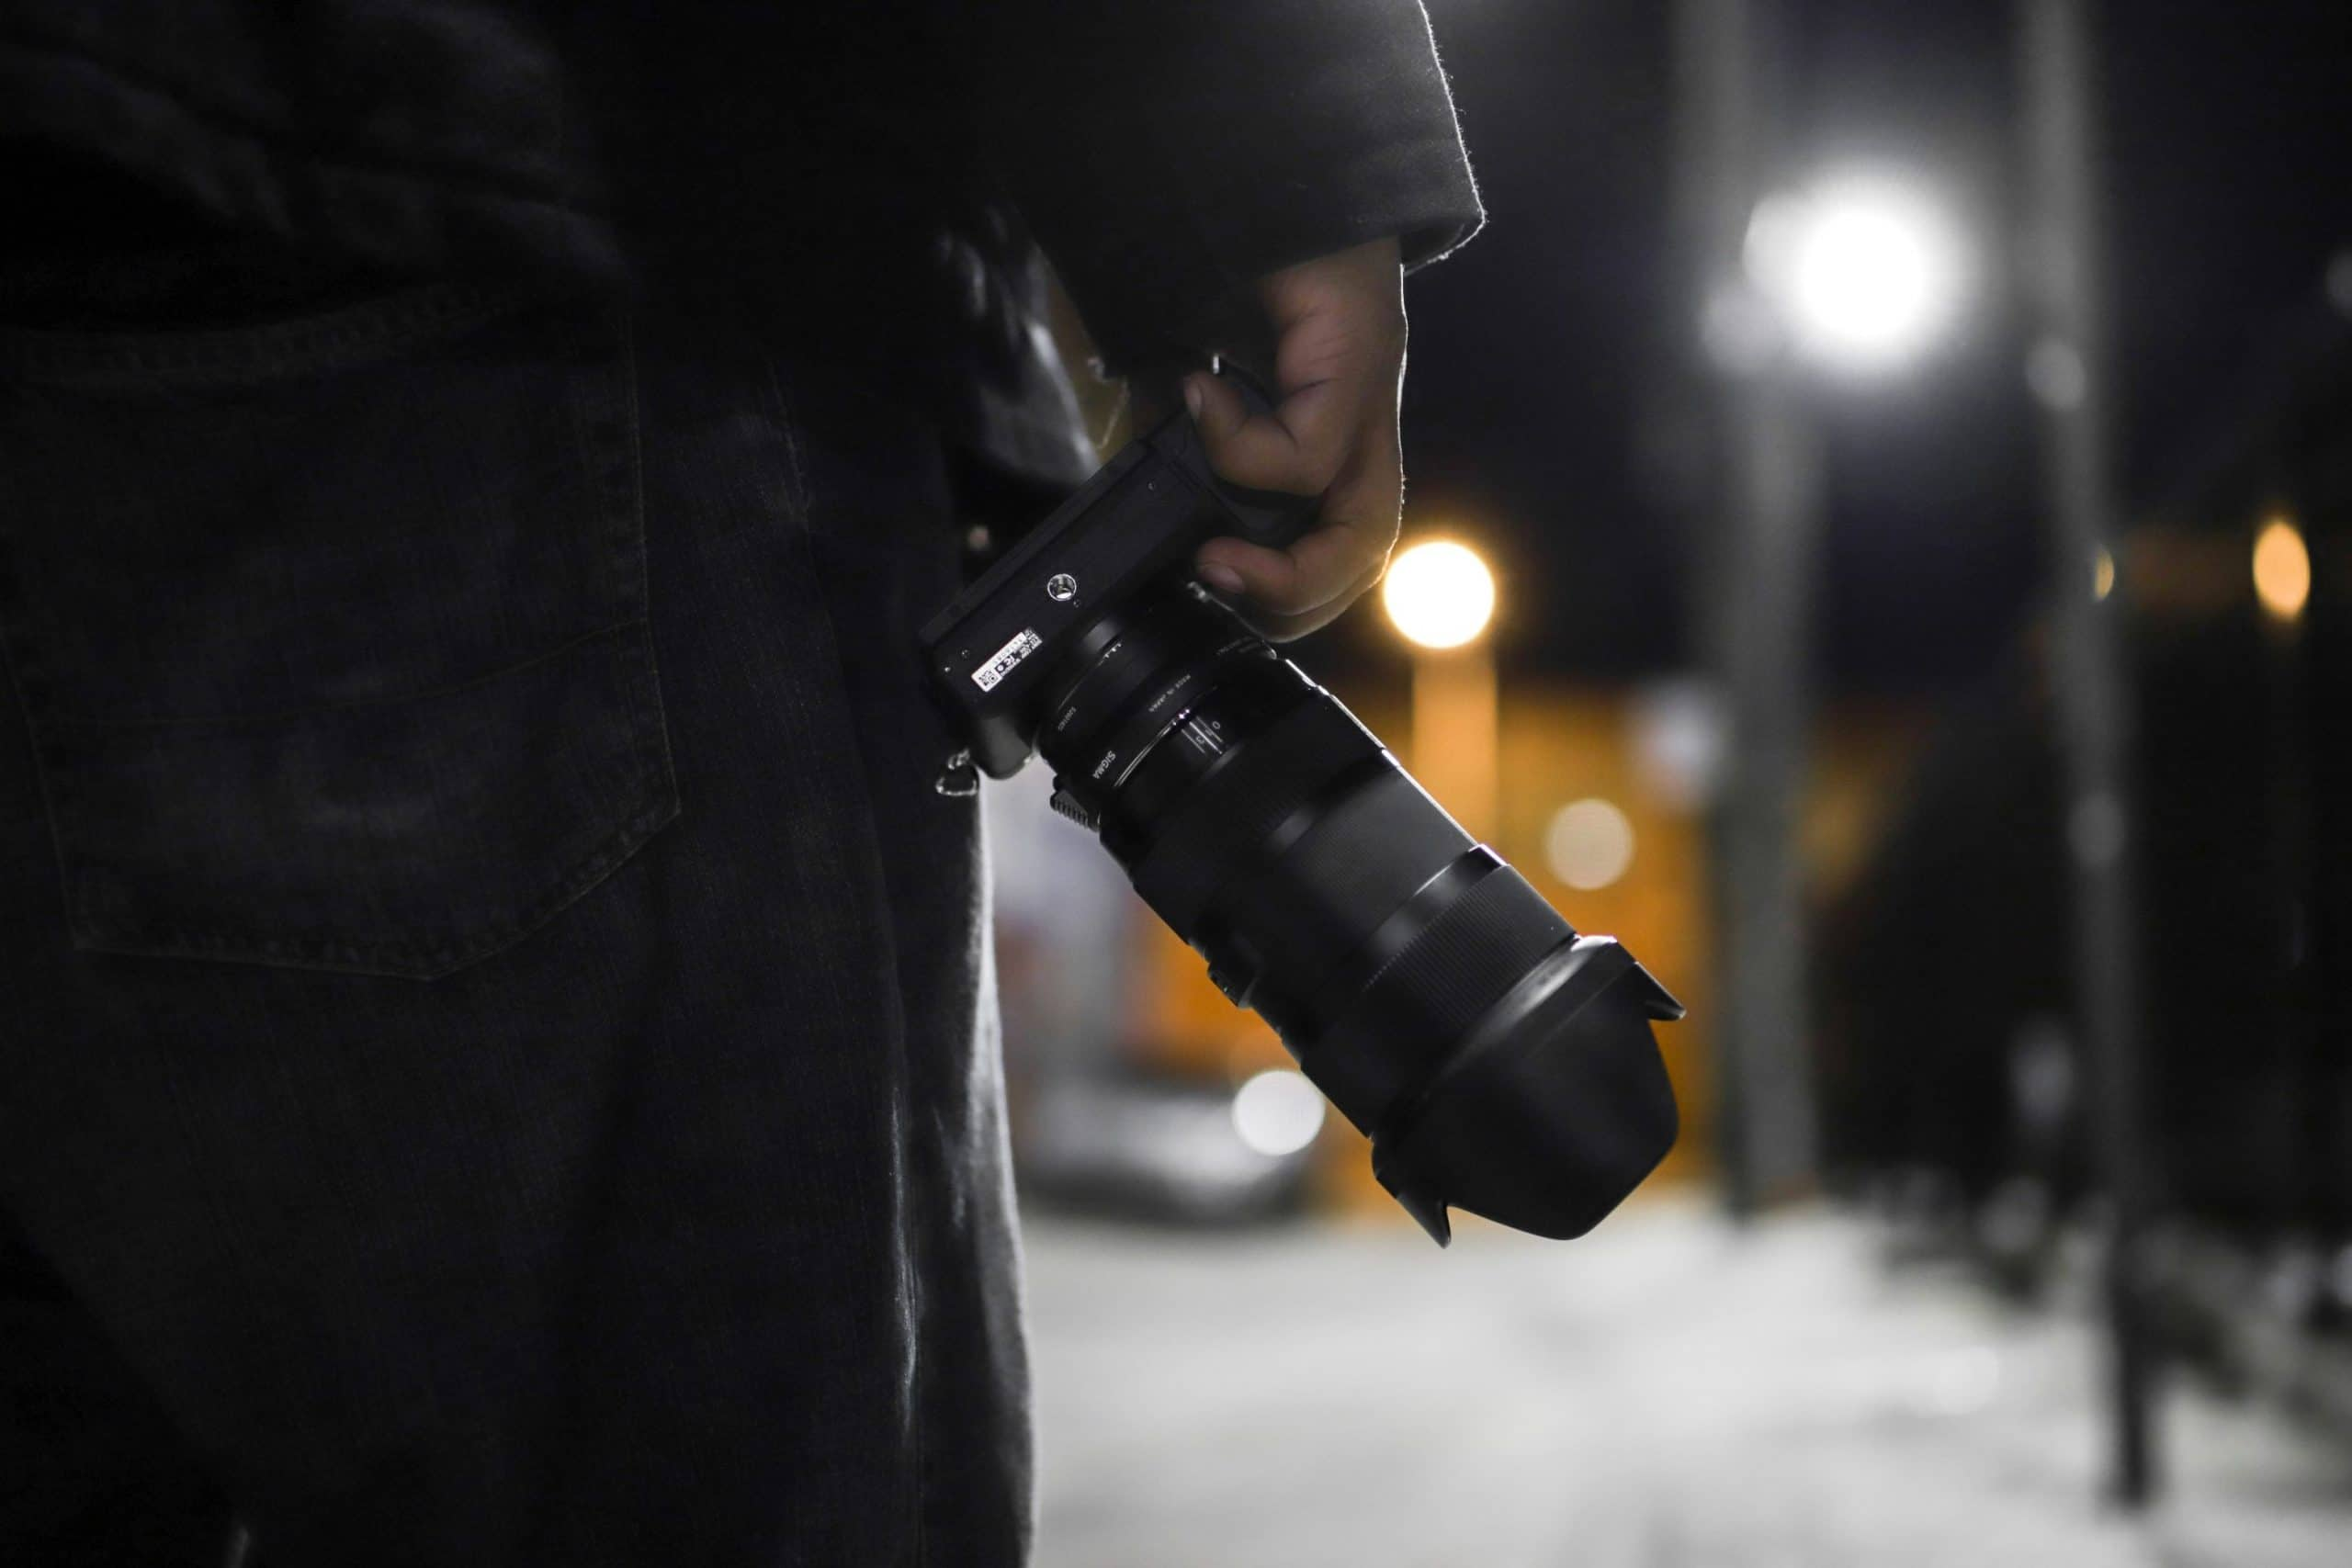 3 Prime Lenses to Consider for Street Photography: A Quick Guide